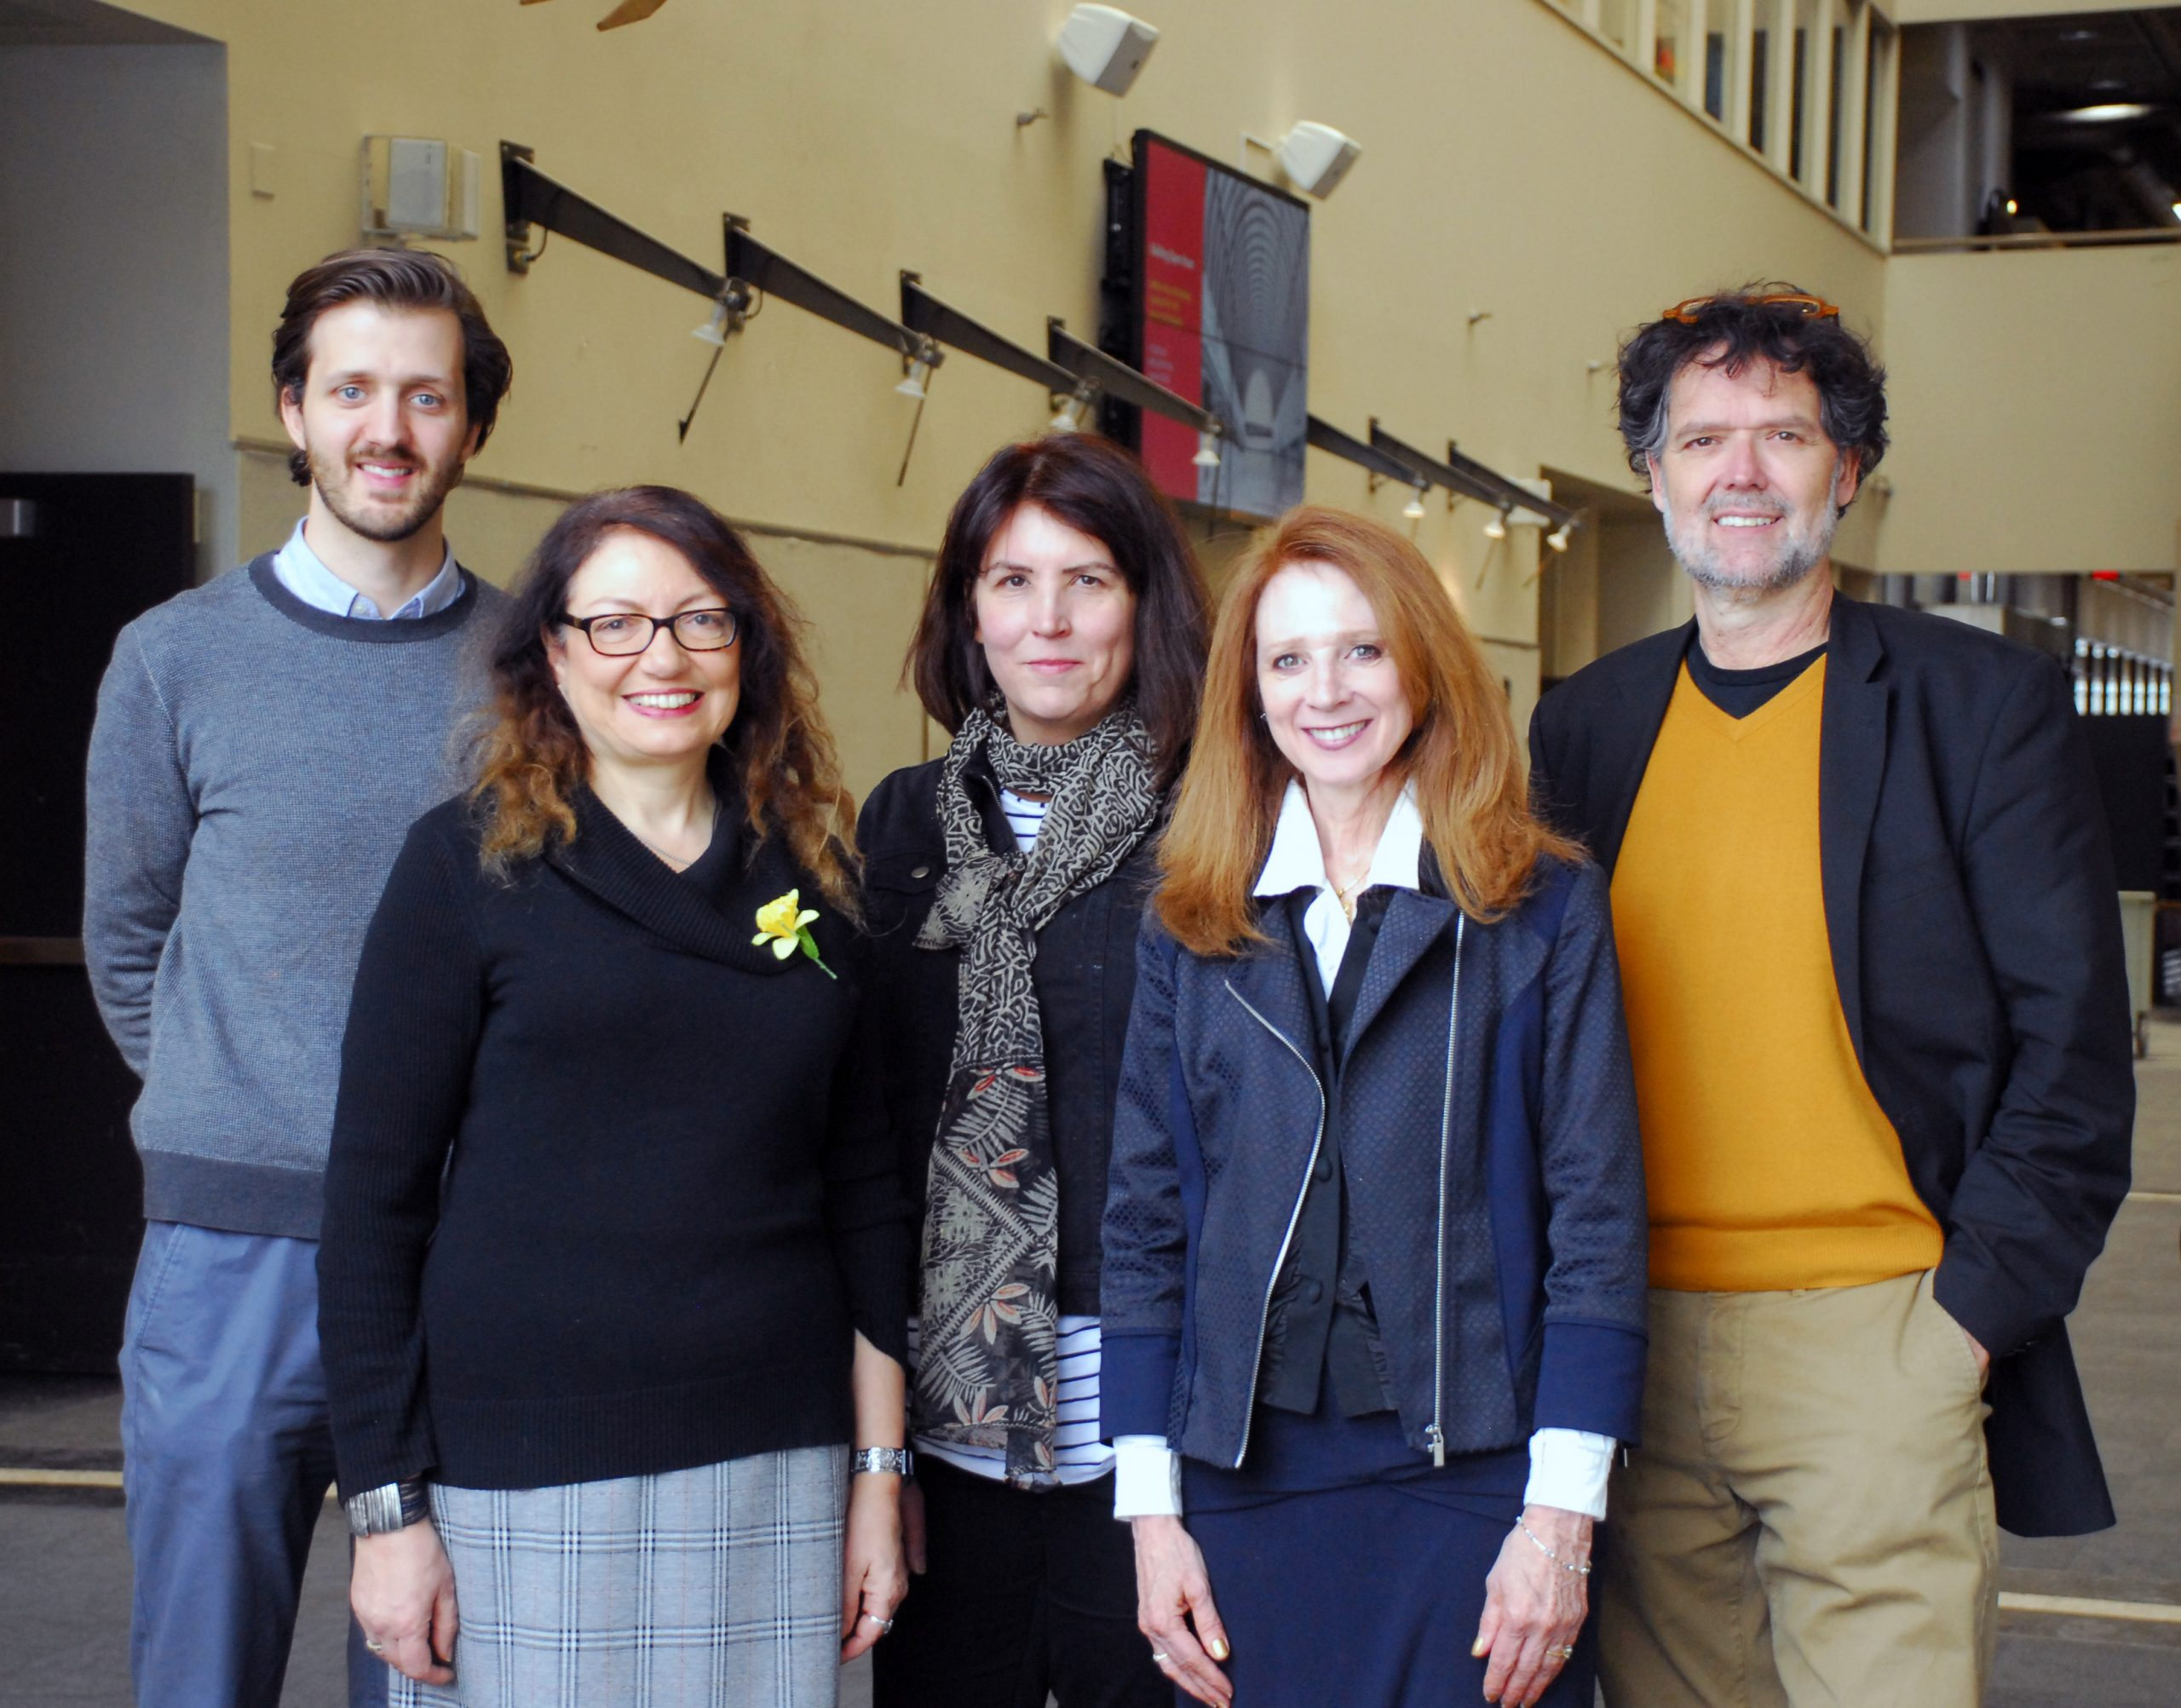 A multidisciplinary team of College of Design faculty has received the inaugural BNIM Regenerative Design Challenge Grant. Pictured from left are Daniel Kuhlmann, Julie Irish, Andrea Wheeler, Diane Al Shihabi and Mikesch Muecke.